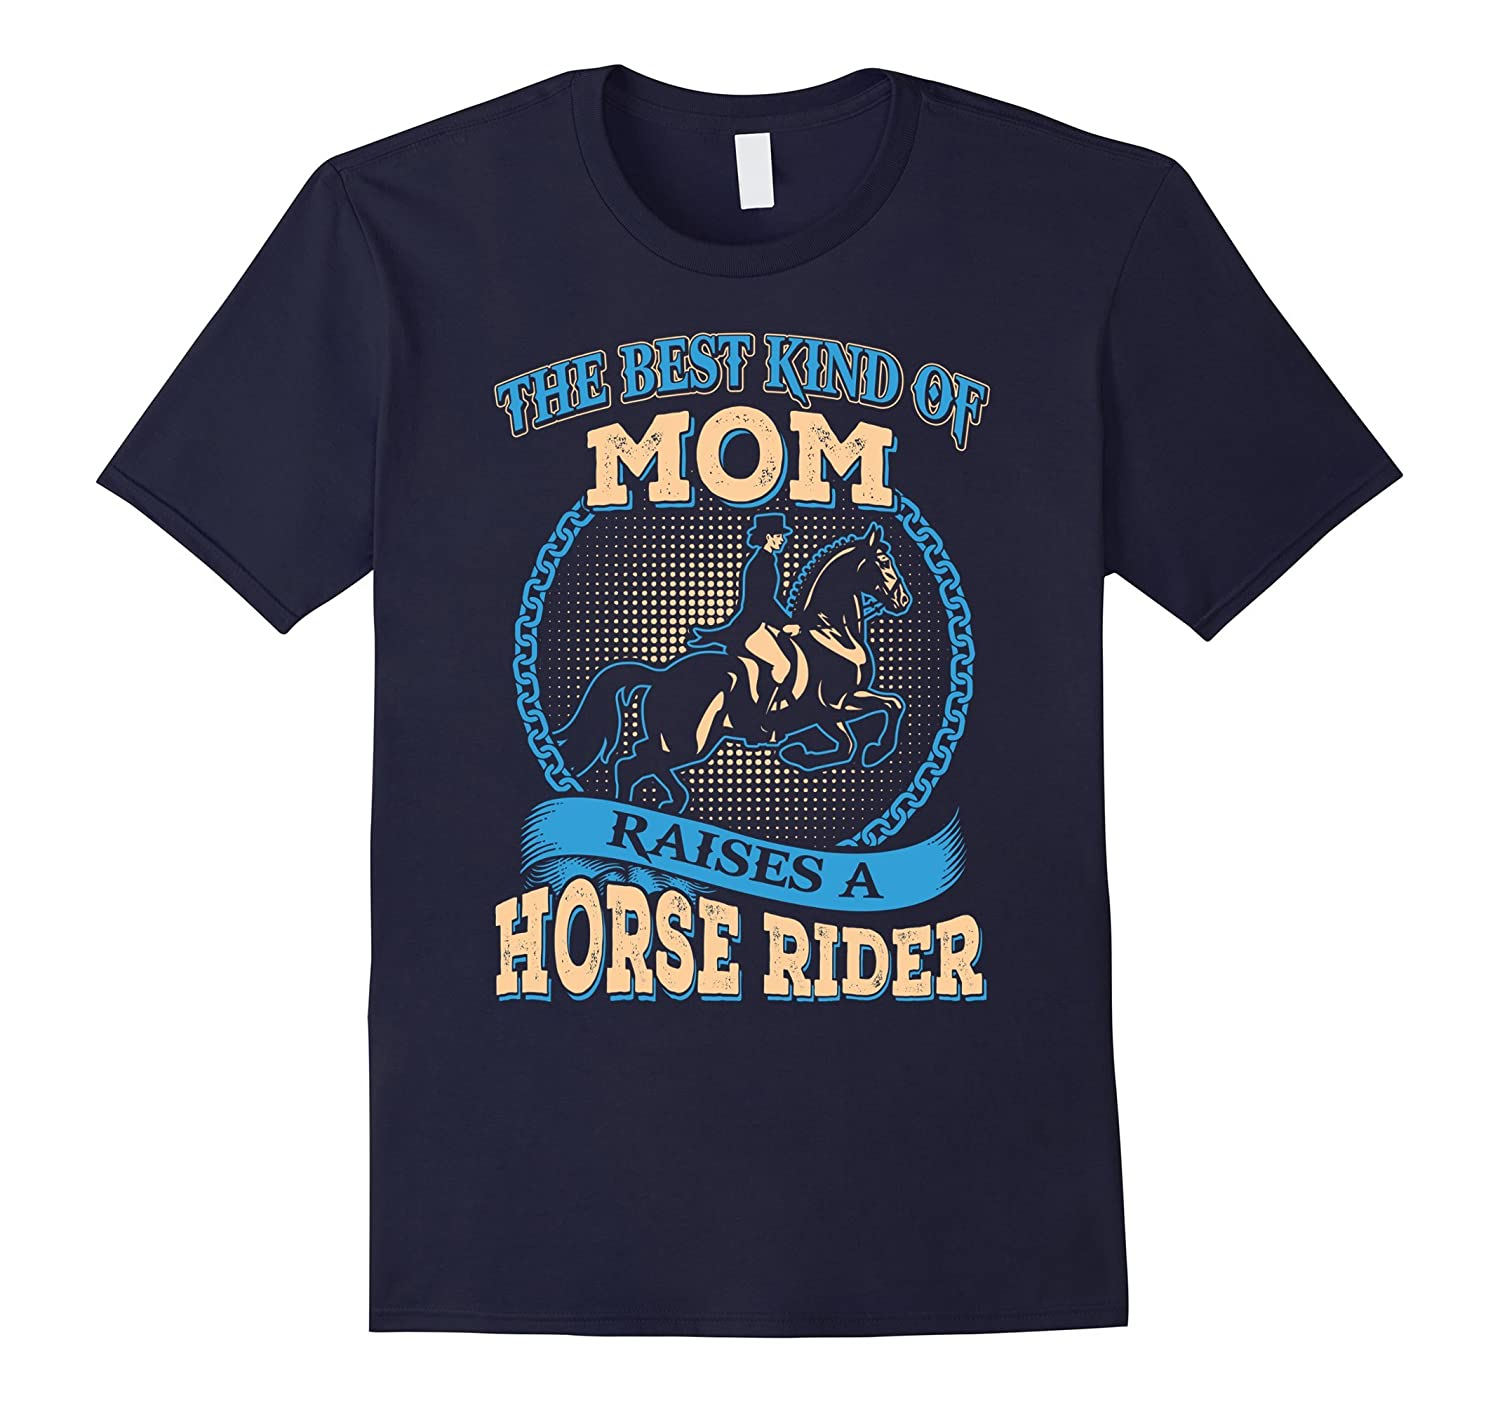 My Daughter Is A Horse Rider Great T-Shirt For Mother-Vaci